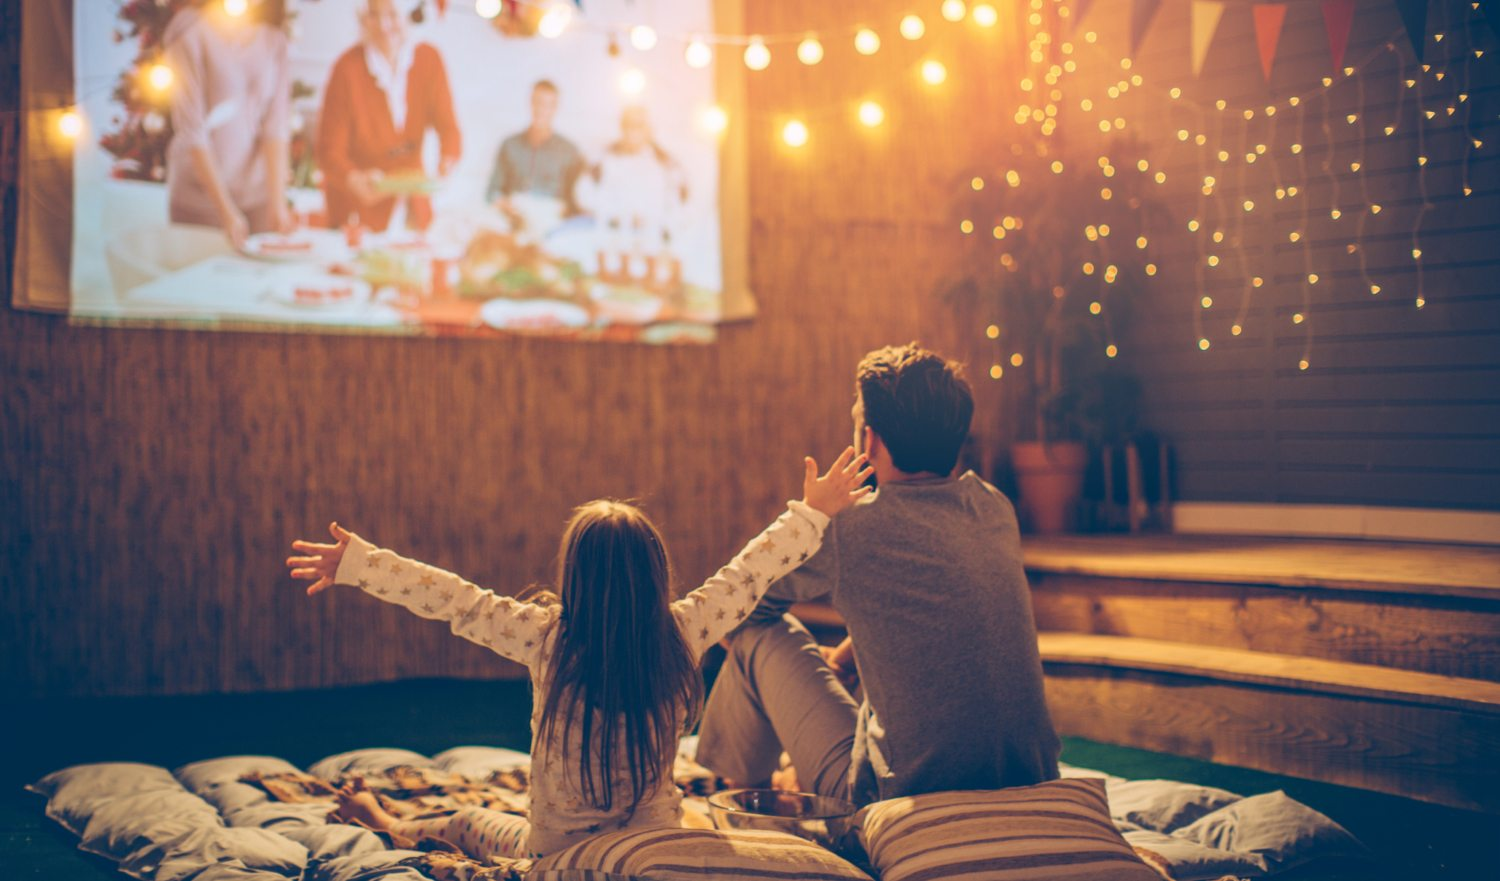 Father and daughter sitting at backyard and looking movie at home improved theatre. Backyard is decorated with string lighs.